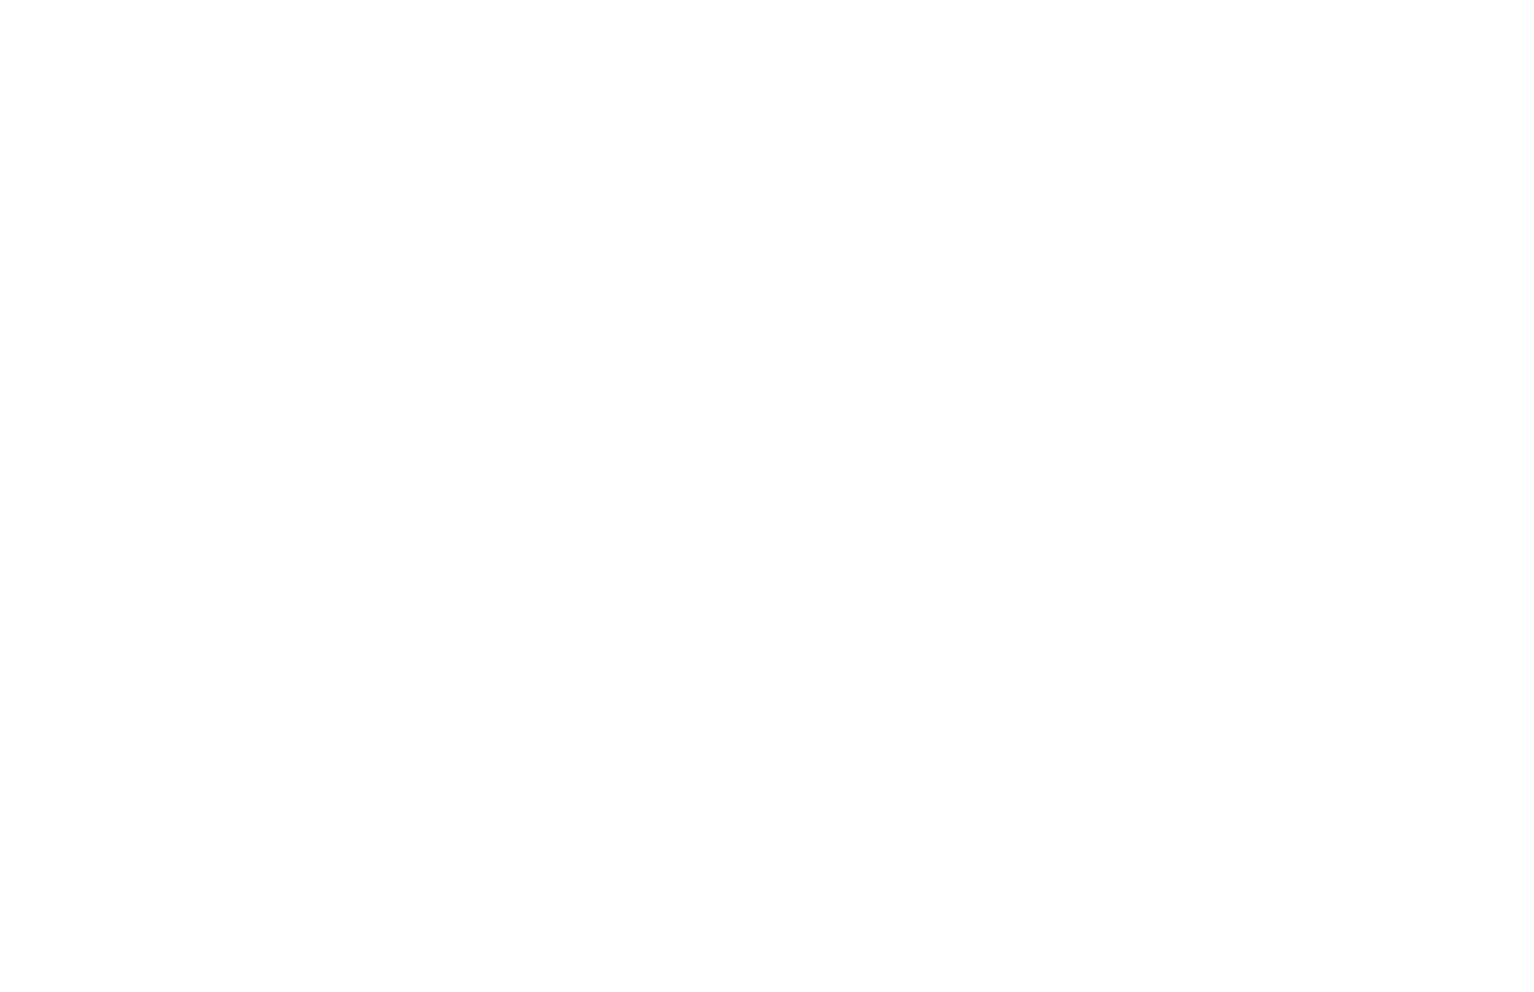 m3e_arcanists_logo.png